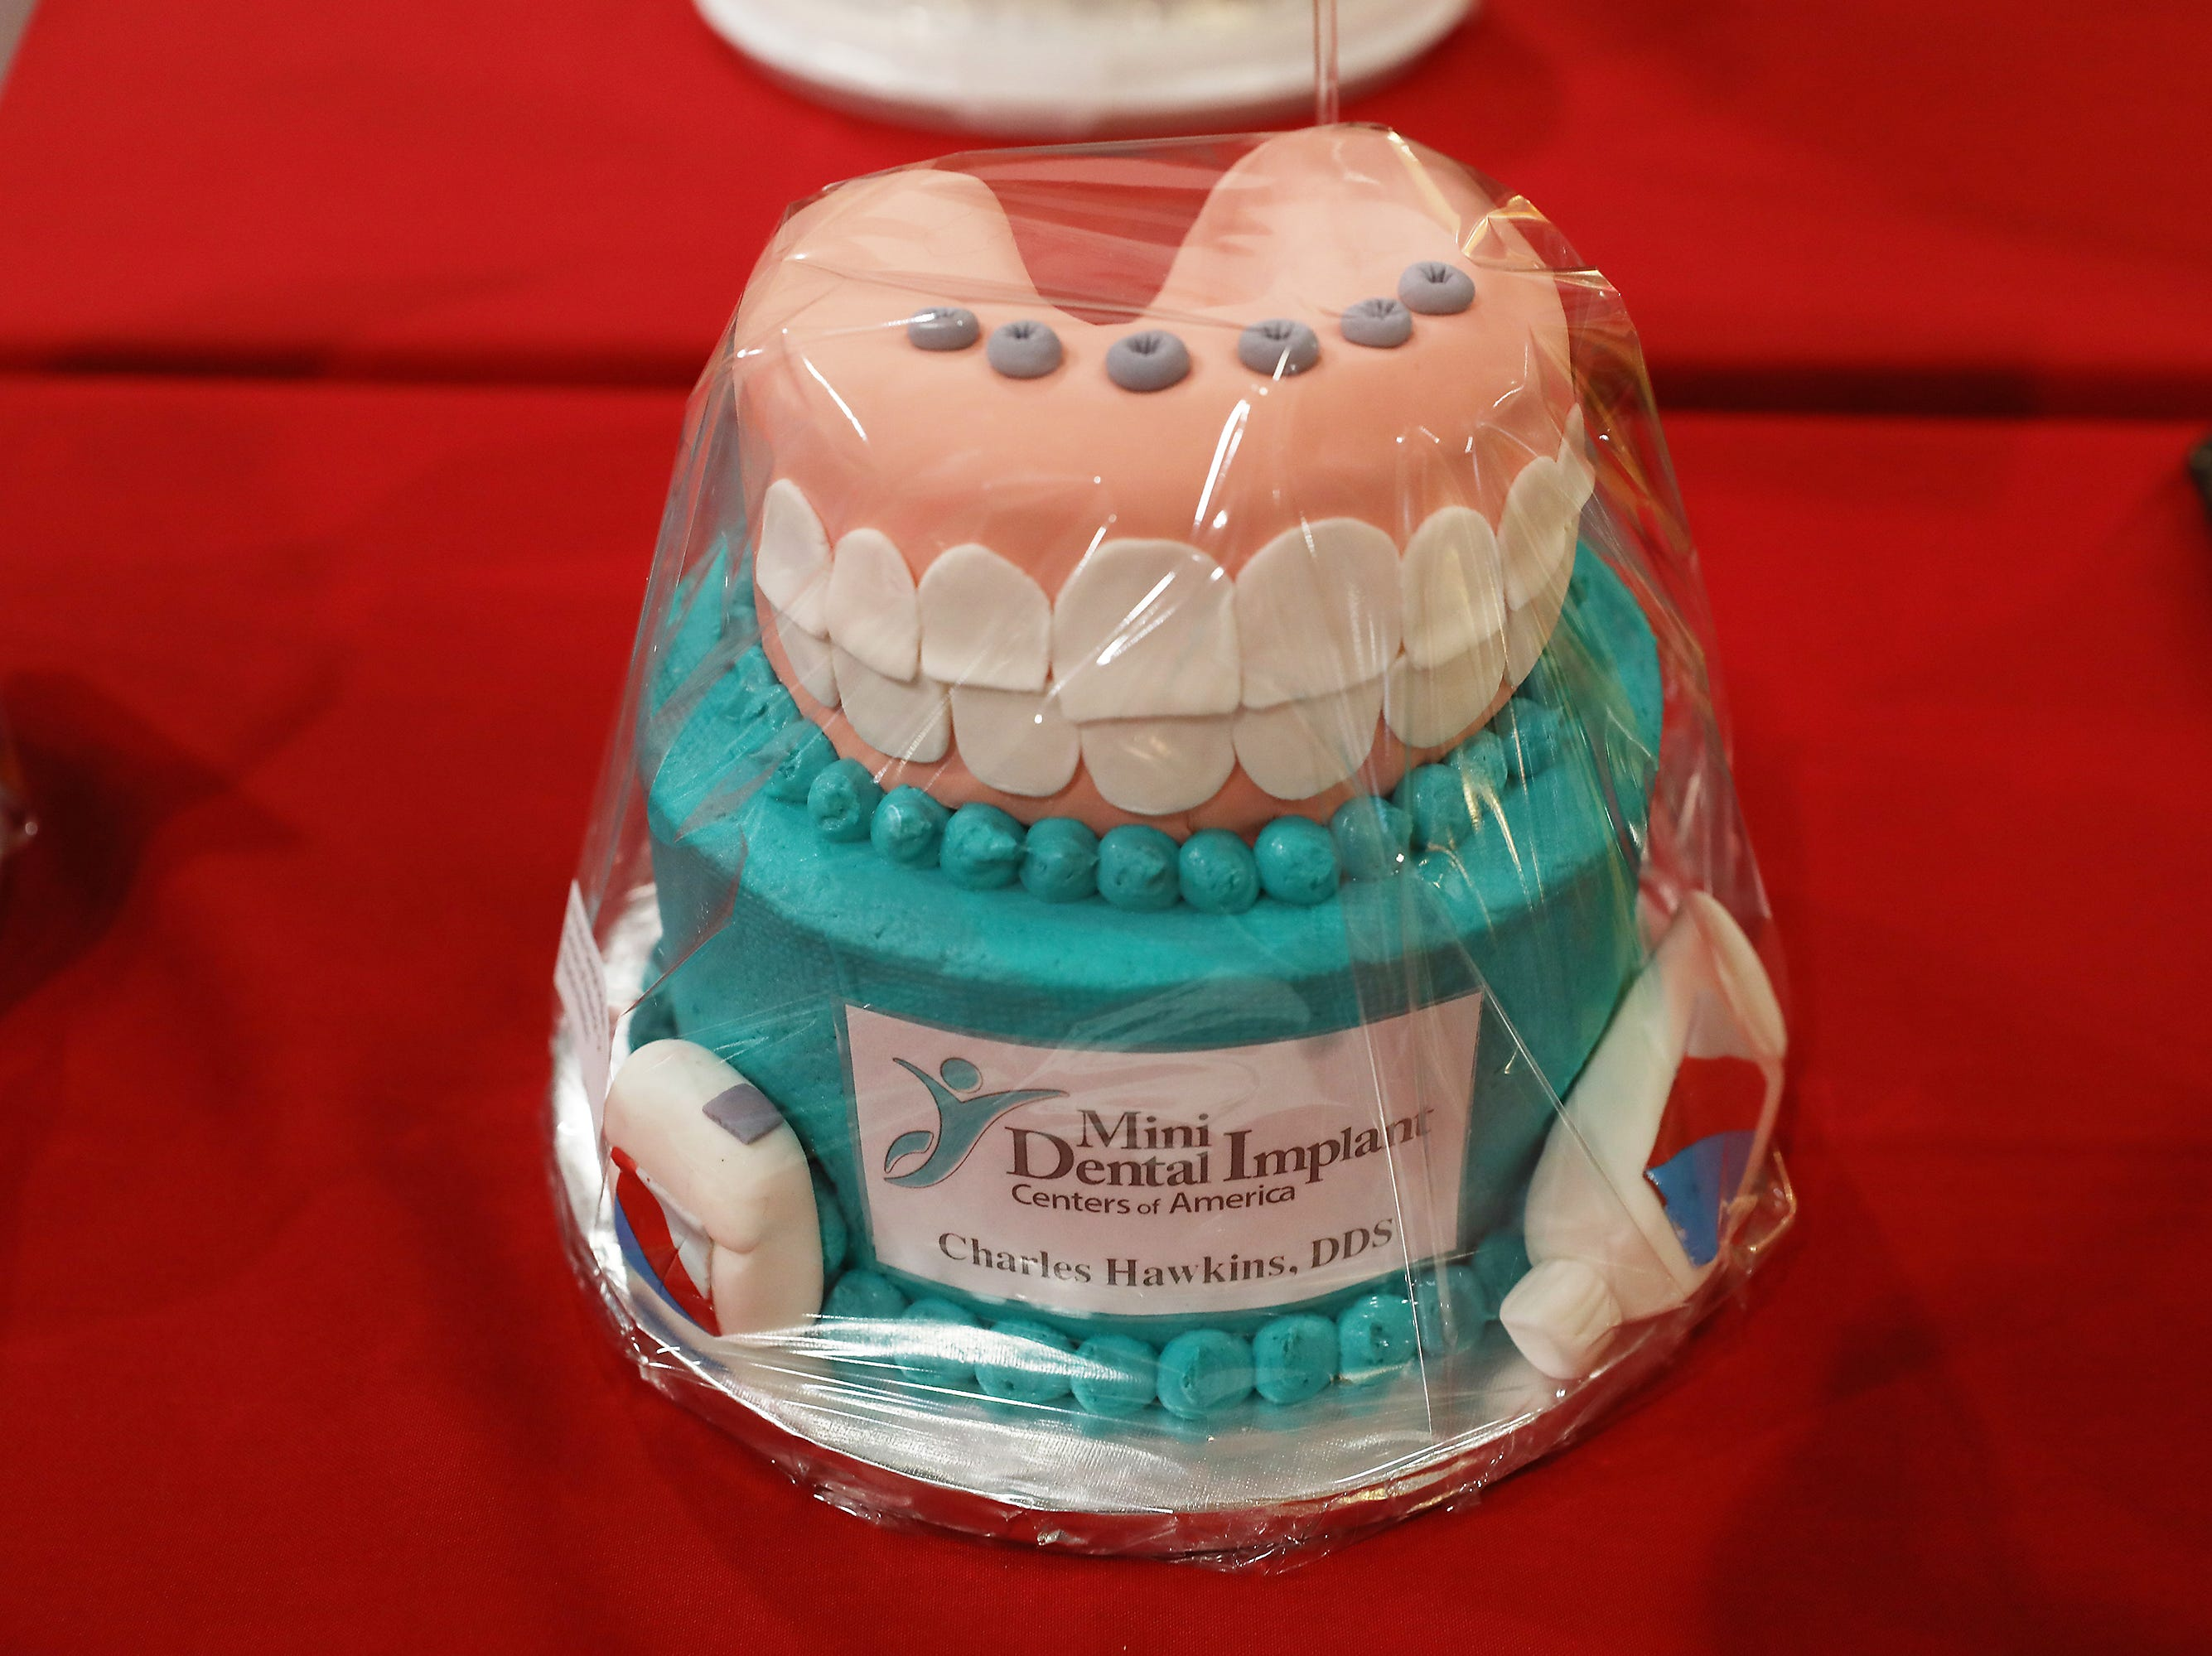 Friday 1:45 P.M. Friday cake 323 Mini Dental Implant Centers of America - at home whitening kit, discount on implant; $199